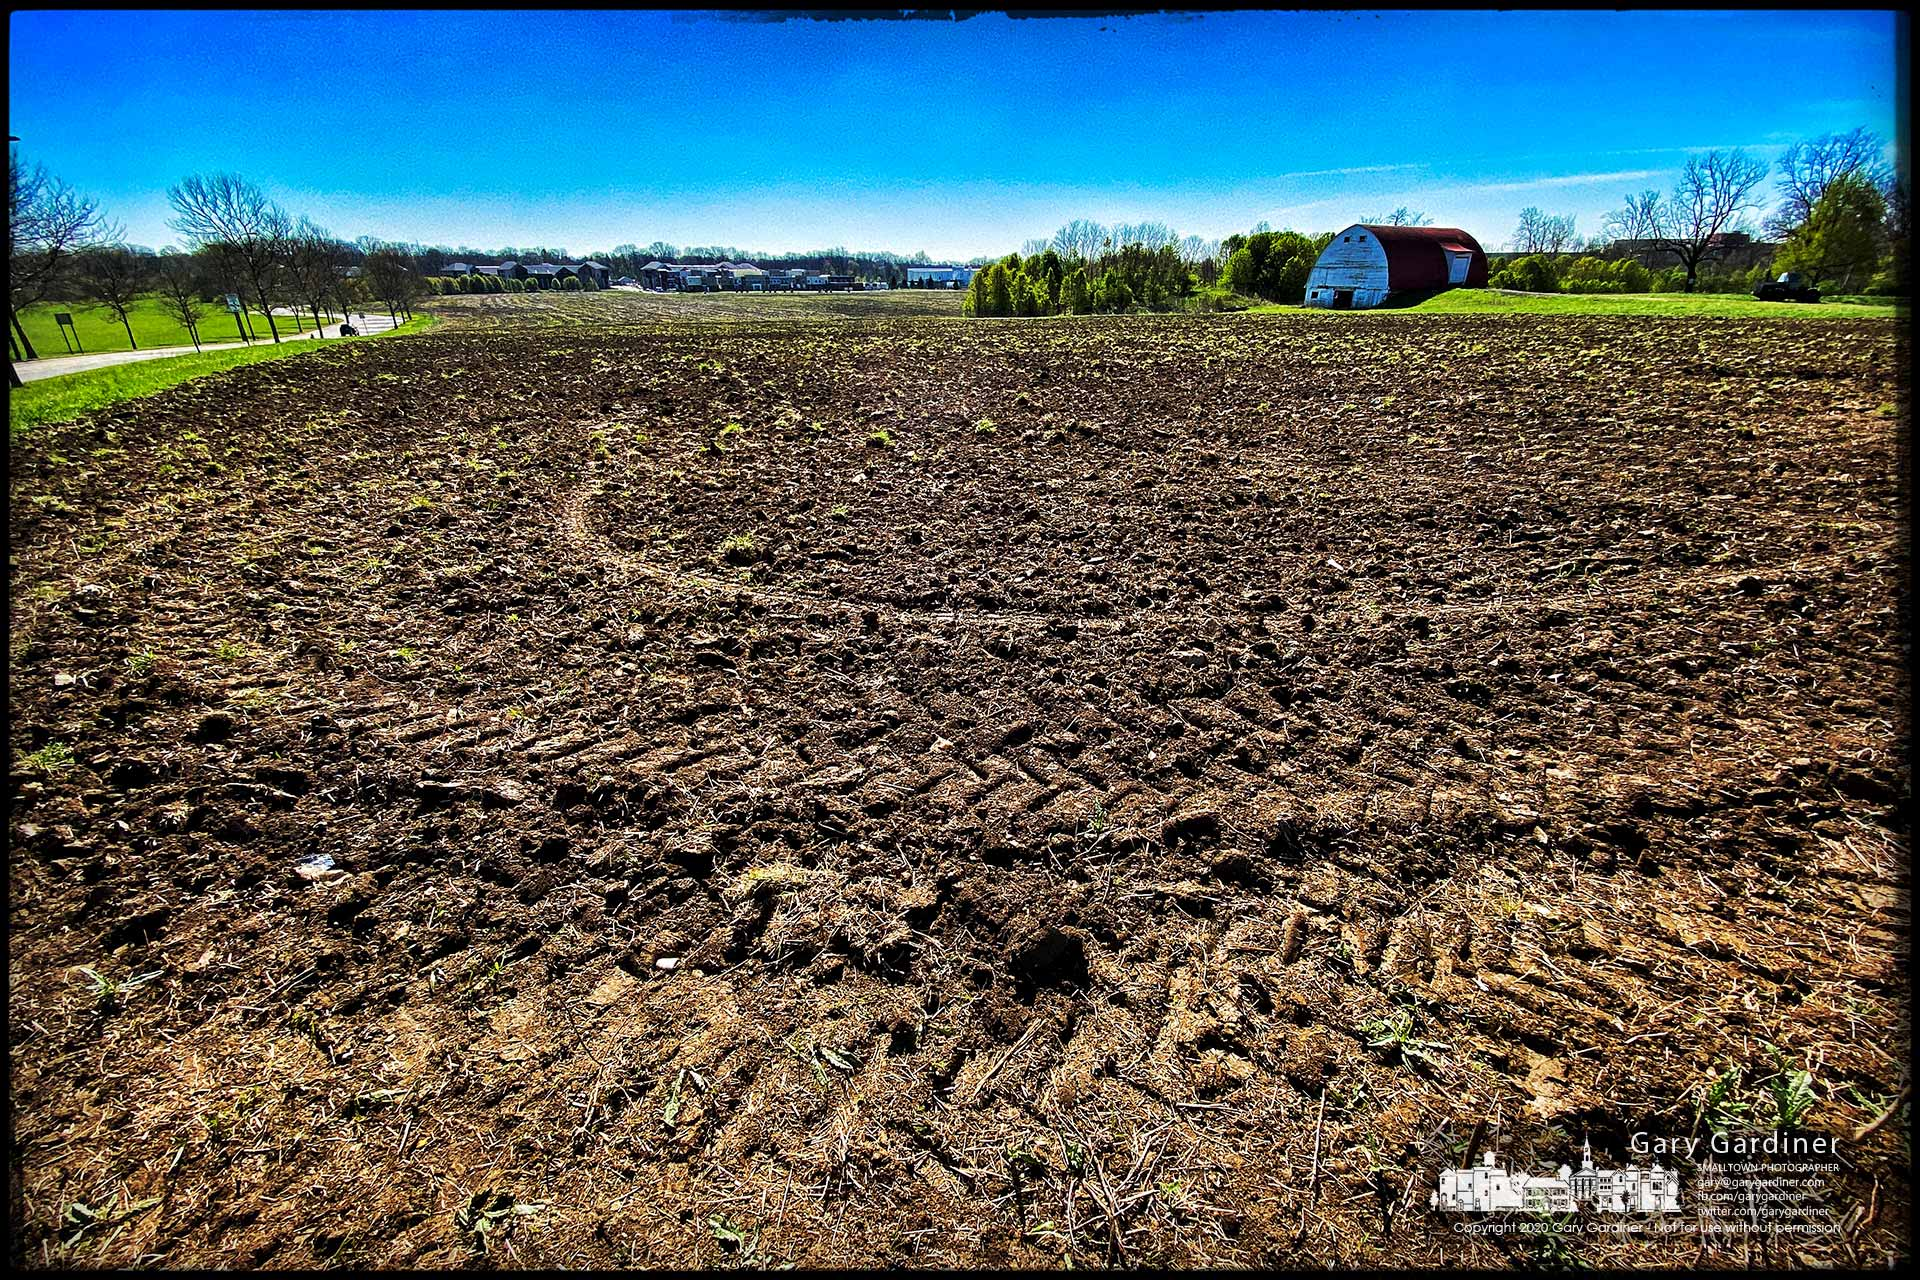 Tractor tire tread impressions mark the corners of the upper field of the Braun Farm where an overgrown hayfield will be converted to growing row crops beginning with corn this spring. My Final Photo for April 27, 2020.